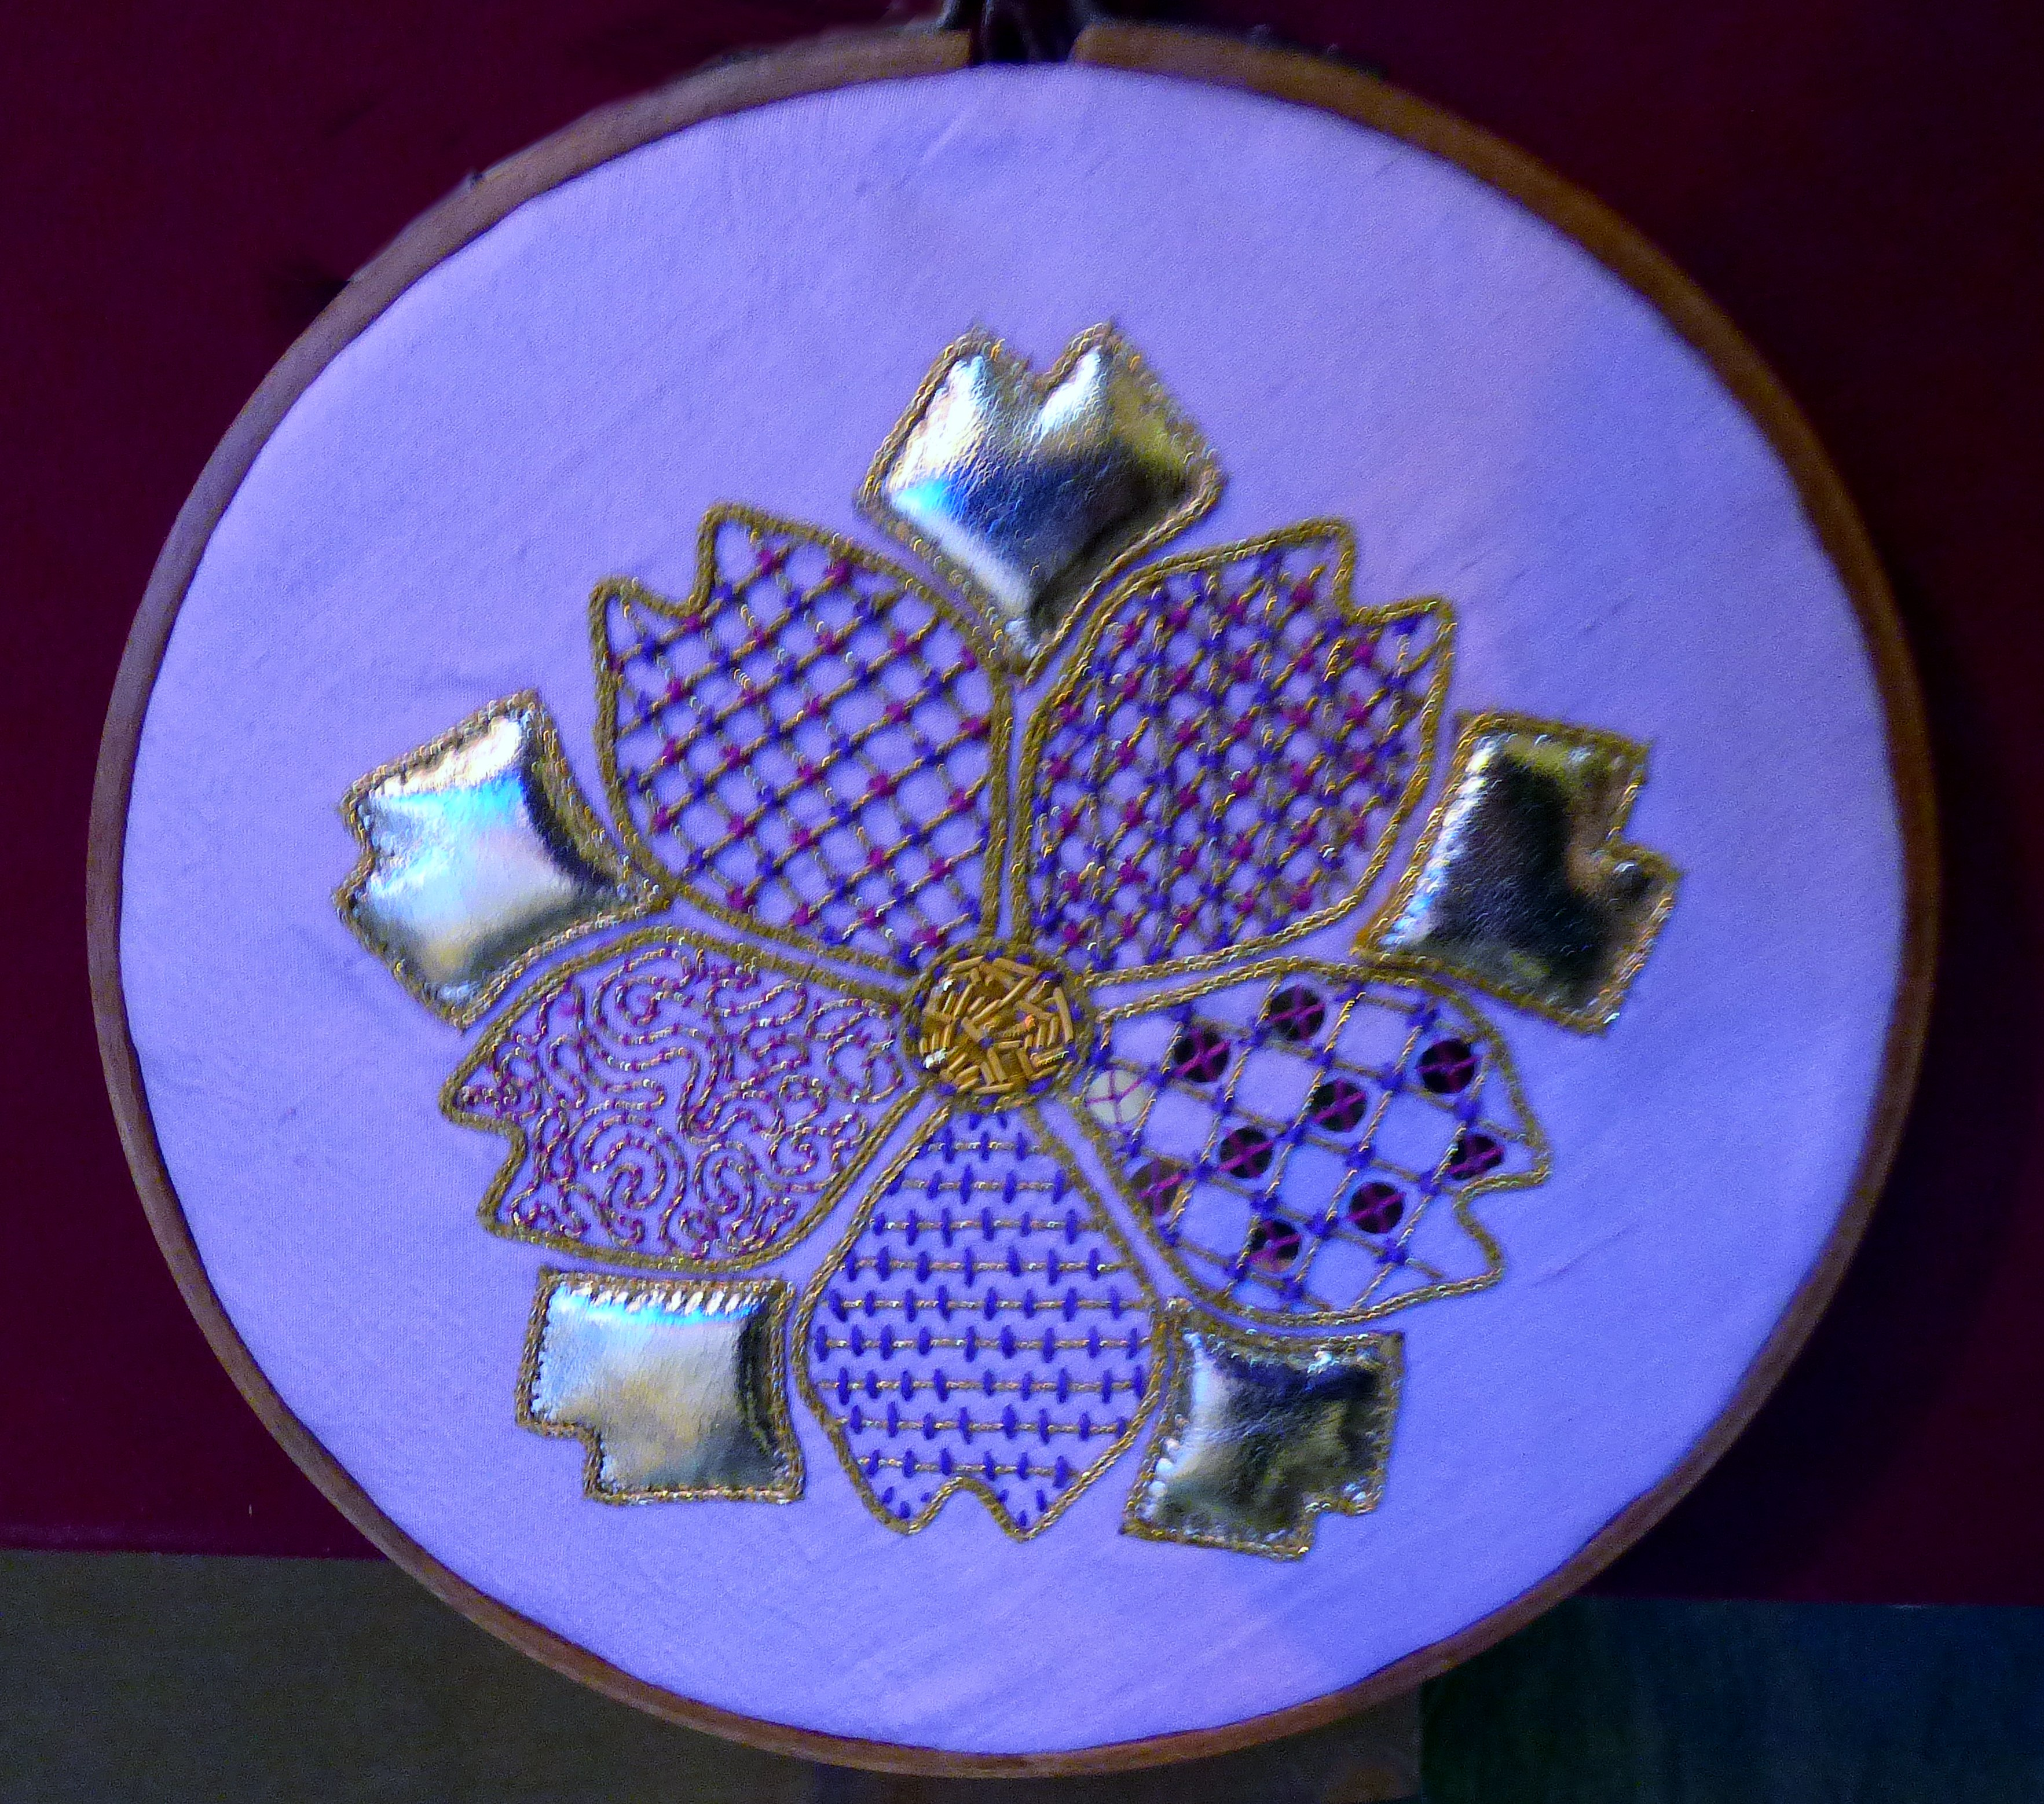 GOLDWORK by F.Trotman at Embroidery for Pleasure exhibition, Liverpool Metropolitan Cathedral 2016